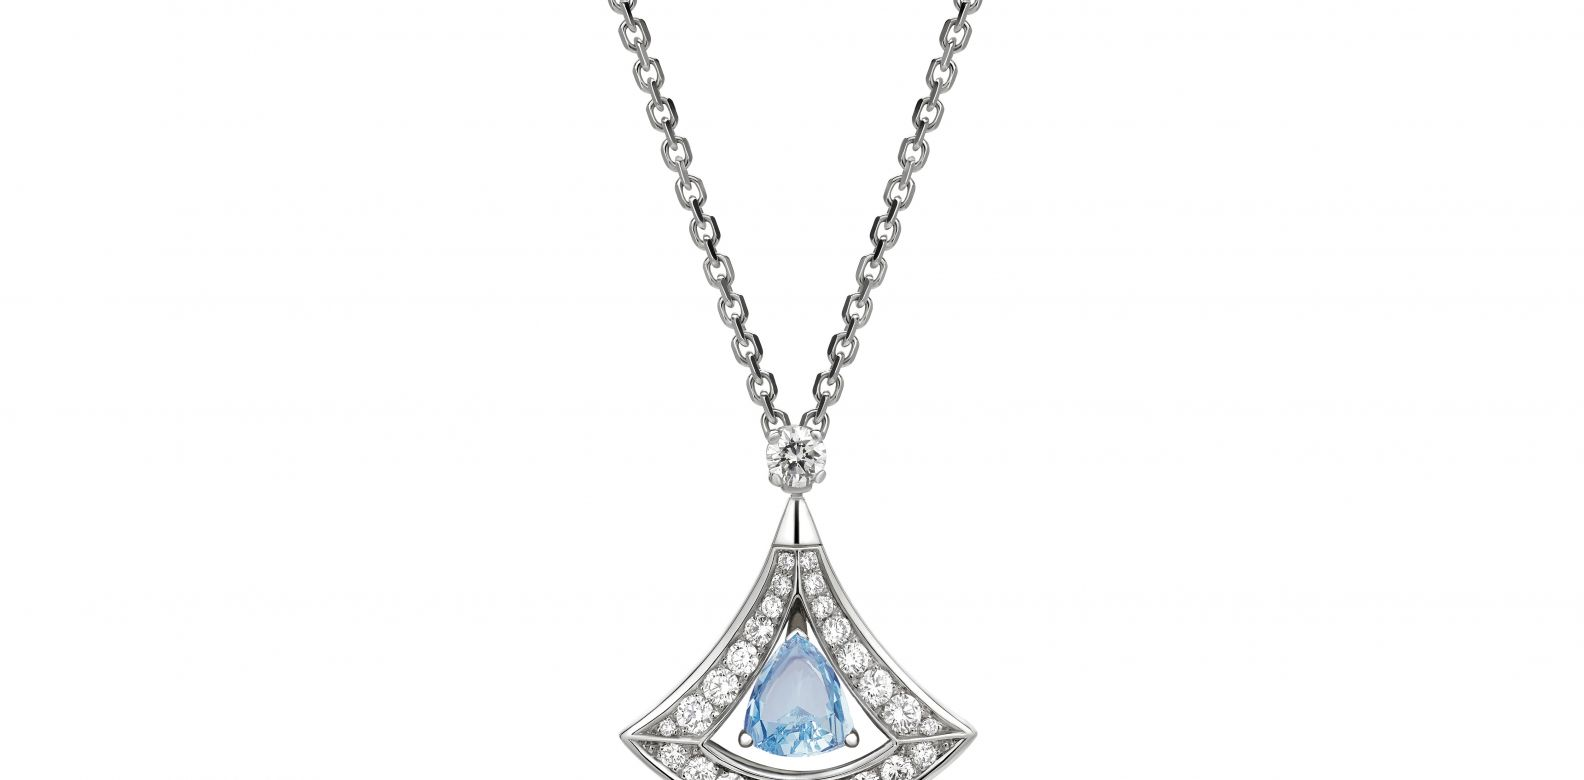 Necklace in white gold with aquamarine and diamonds (1.16cts)